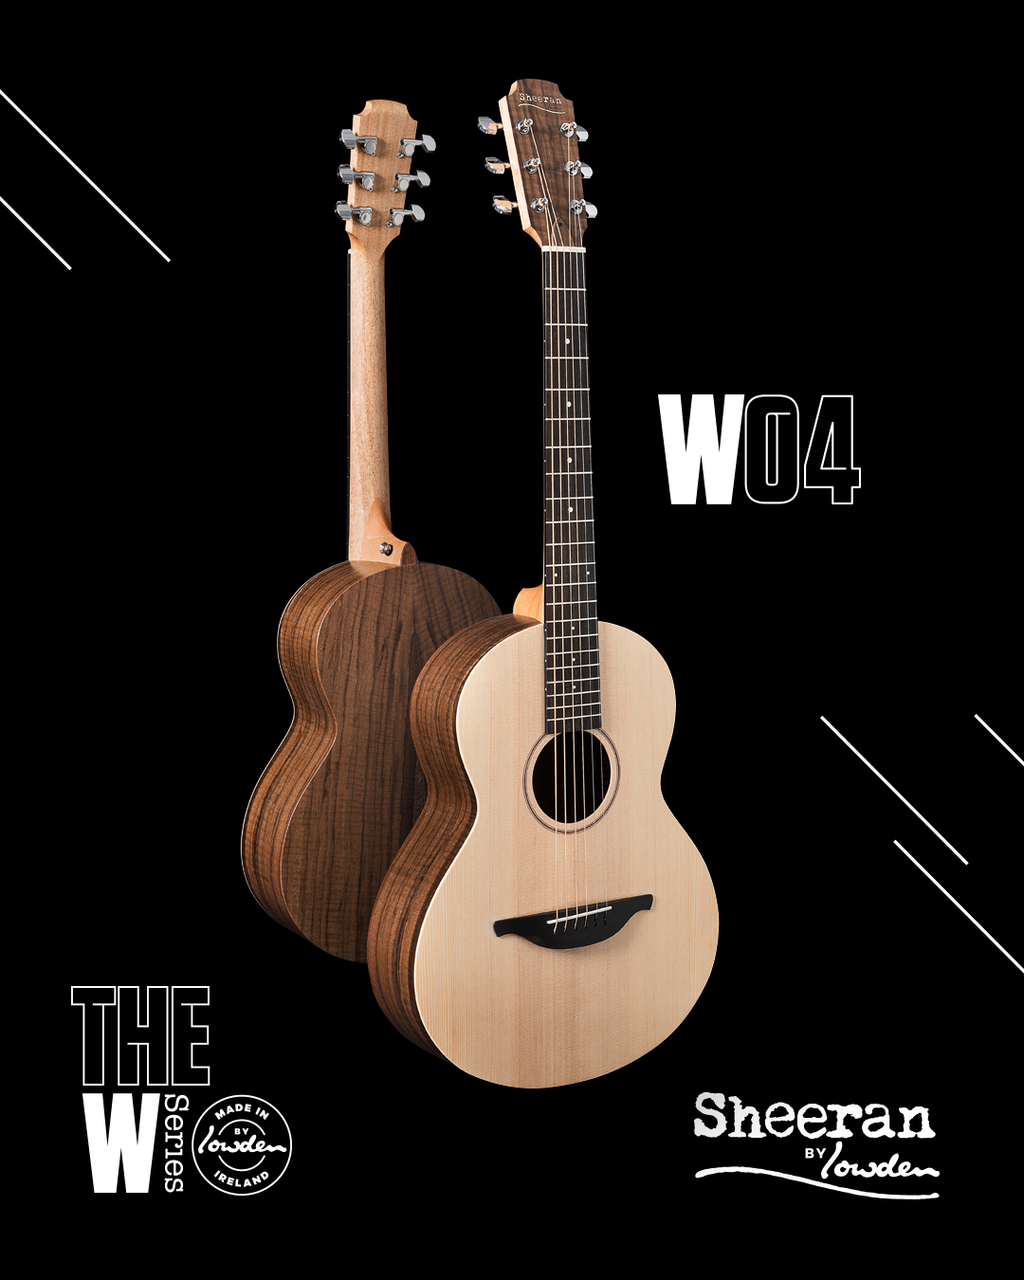 Sheeran by Lowden W-04 Sitka Spruce, Figured Walnut Back & Sides PRE-ORDER